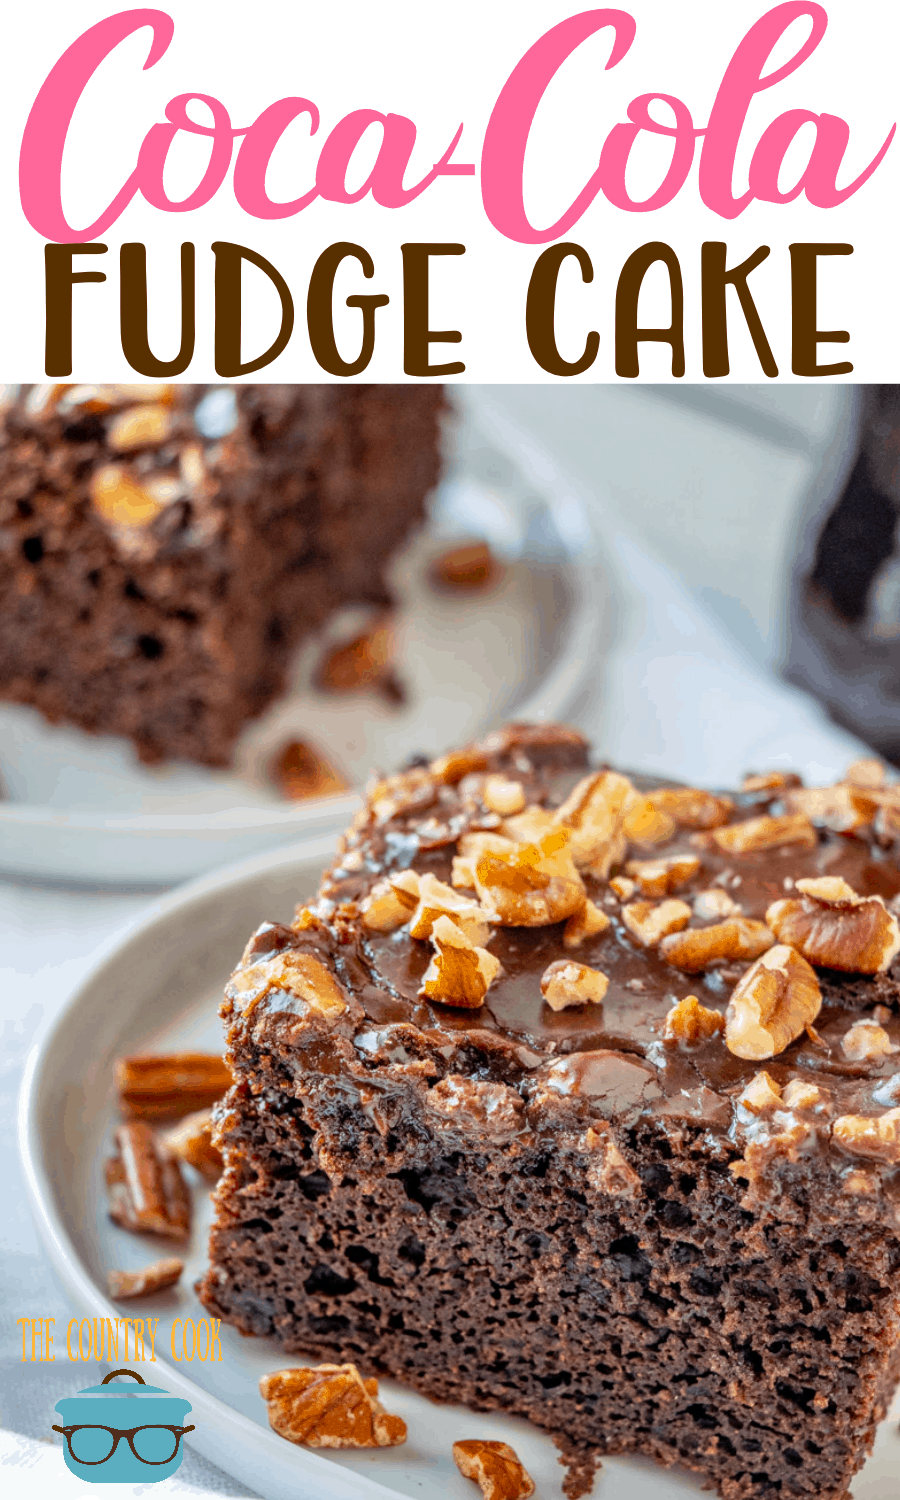 This Double Fudge Coca Cola Cake tastes even better than the one at Cracker Barrel and is easy to make since it starts with a boxed cake mix!